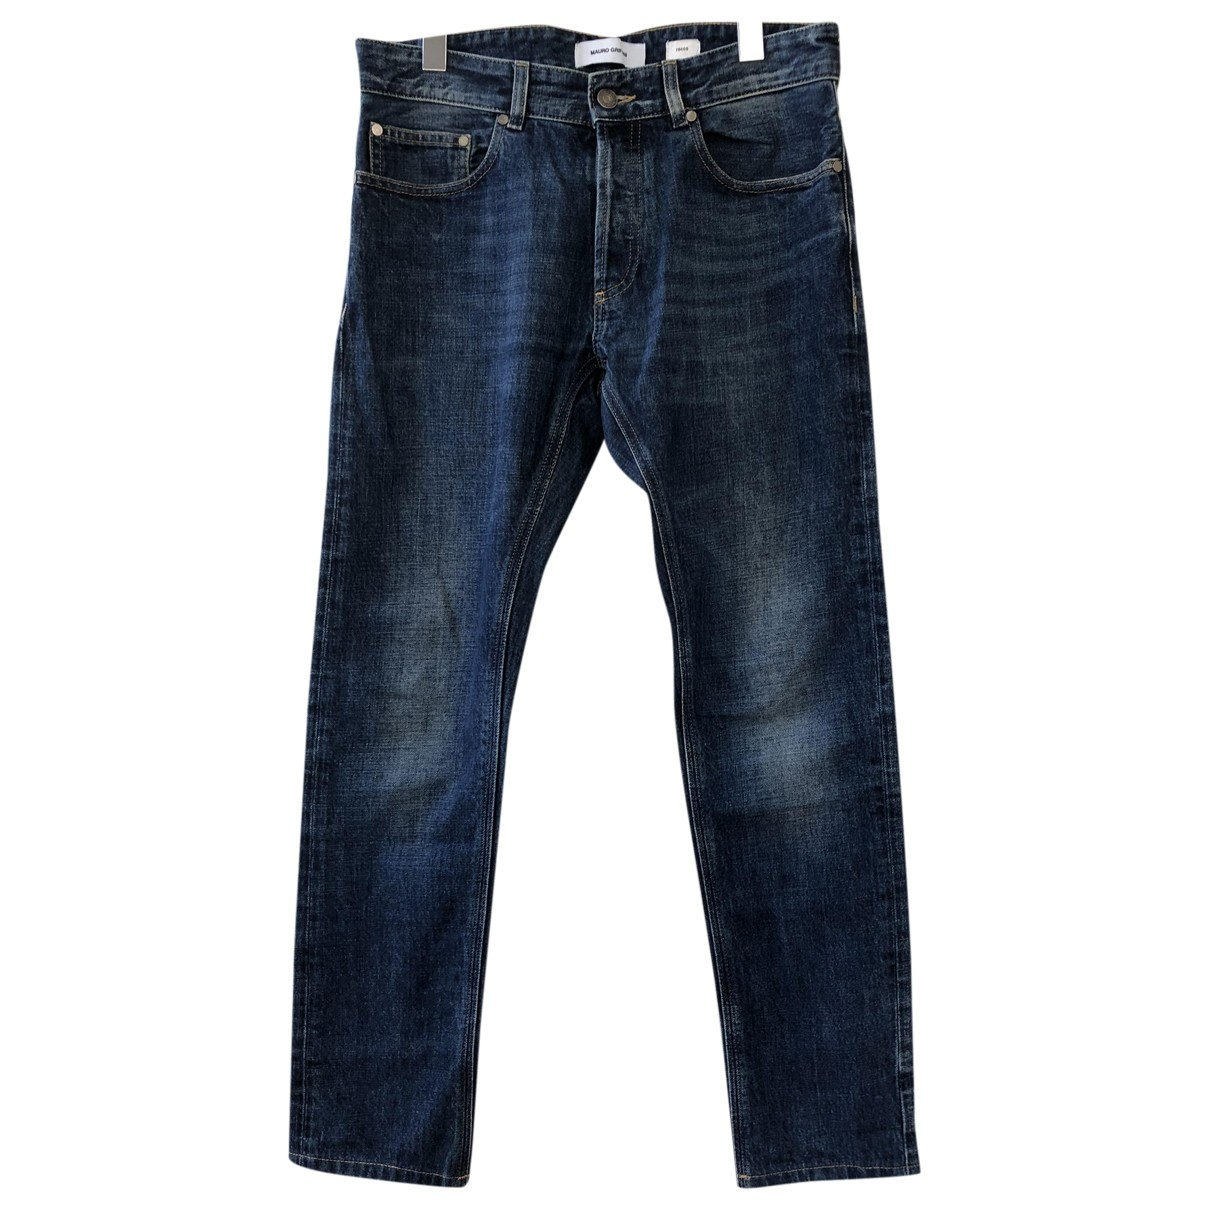 Mauro Grifoni \N Blue Cotton Jeans for Women 30 US